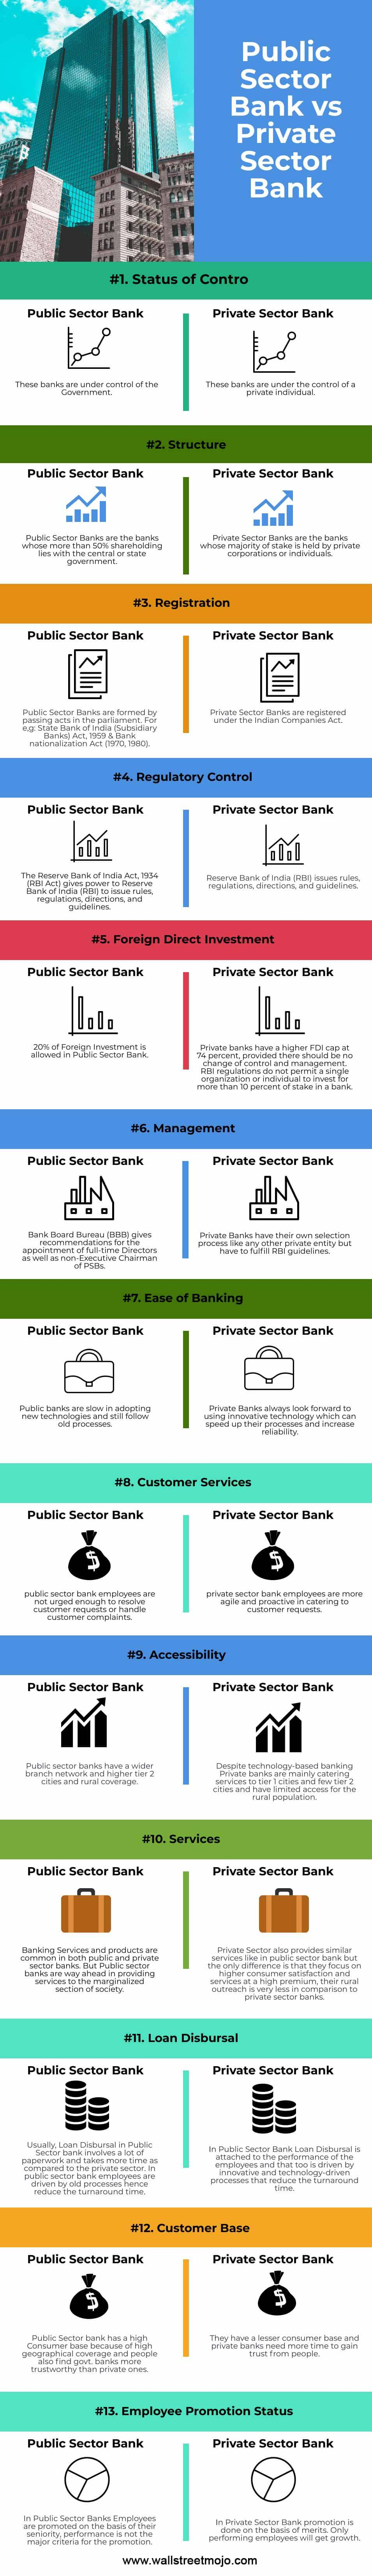 Public-Sector-Bank-vs-Private-Sector-Bank-info